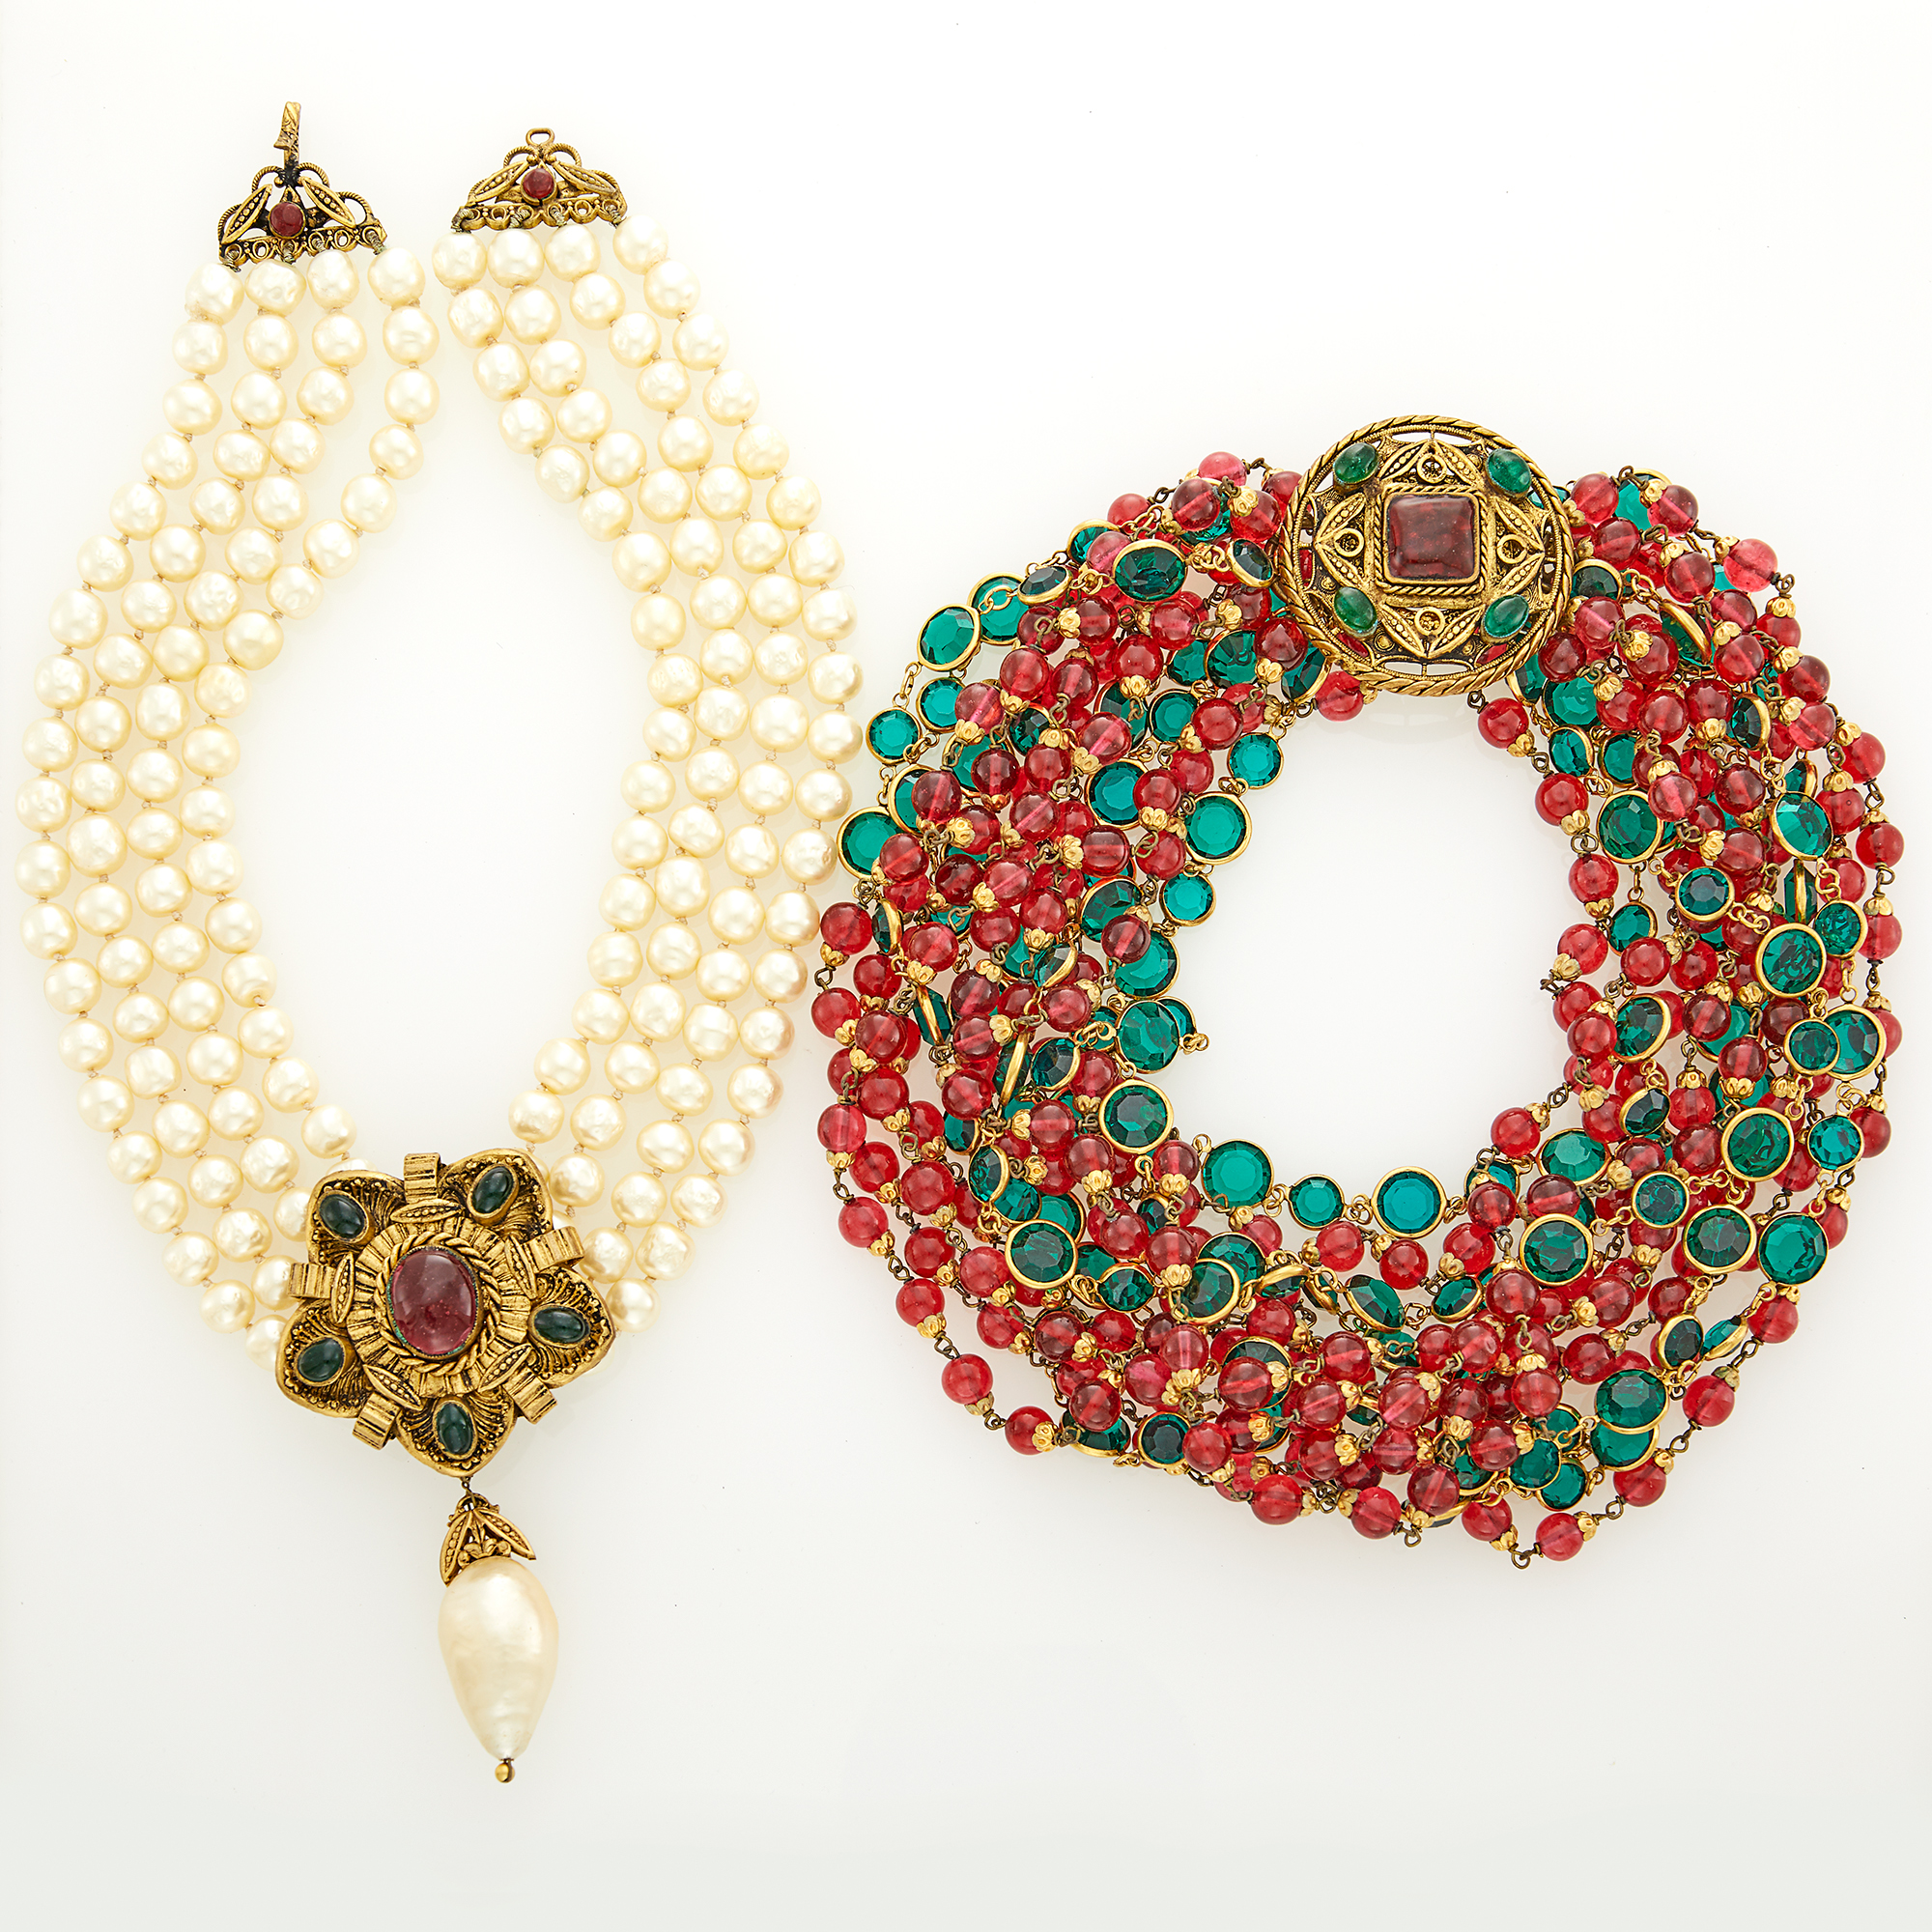 Lot image - Chanel Multistrand Gilt-Metal, Strass and Gripoix Torsade Necklace and Gripoix and Four Strand Glass Imitation Pearl Necklace